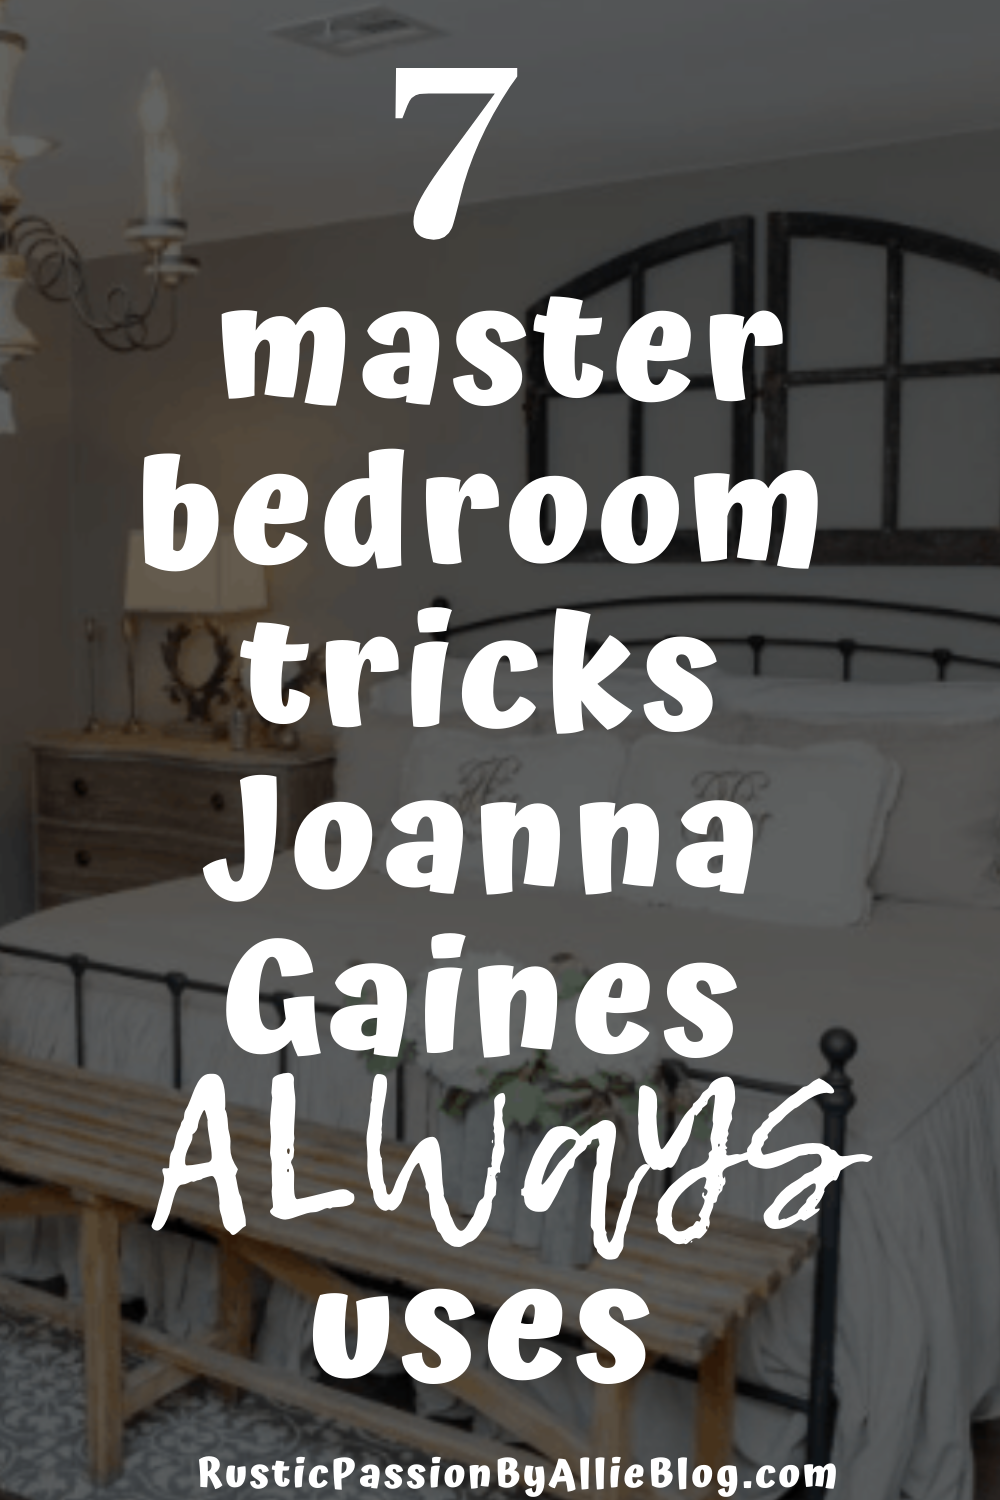 7 master bedroom tricks Joanna Gaines ALWAYS uses.